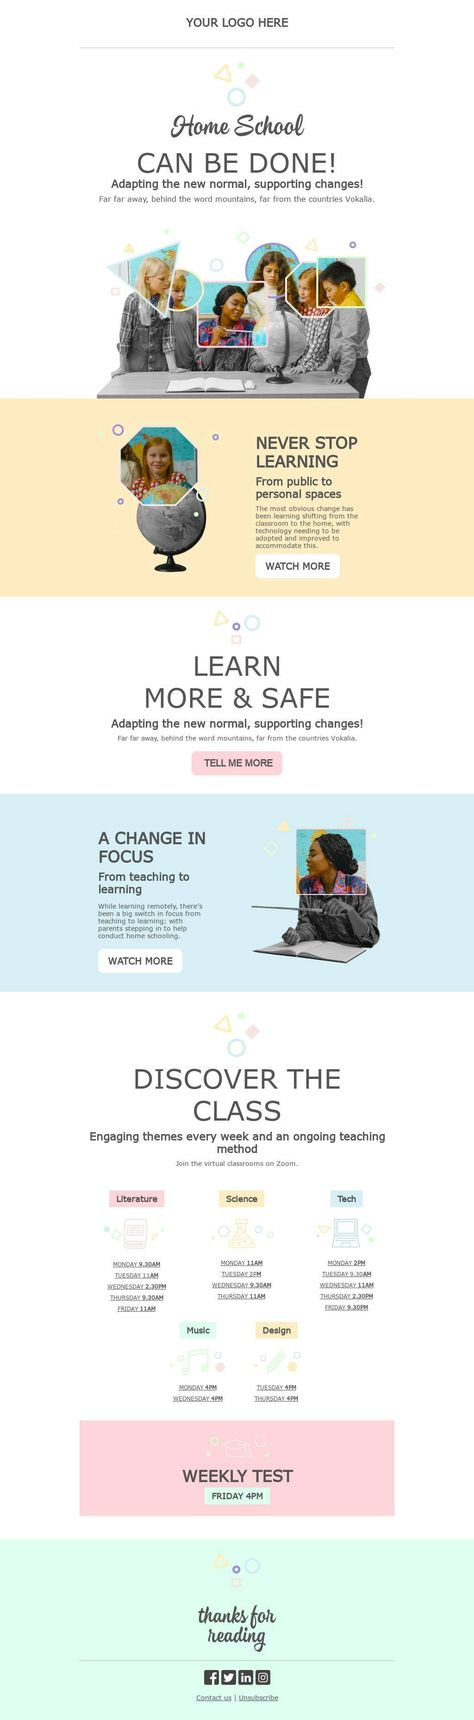 School and the new normal - Email Template